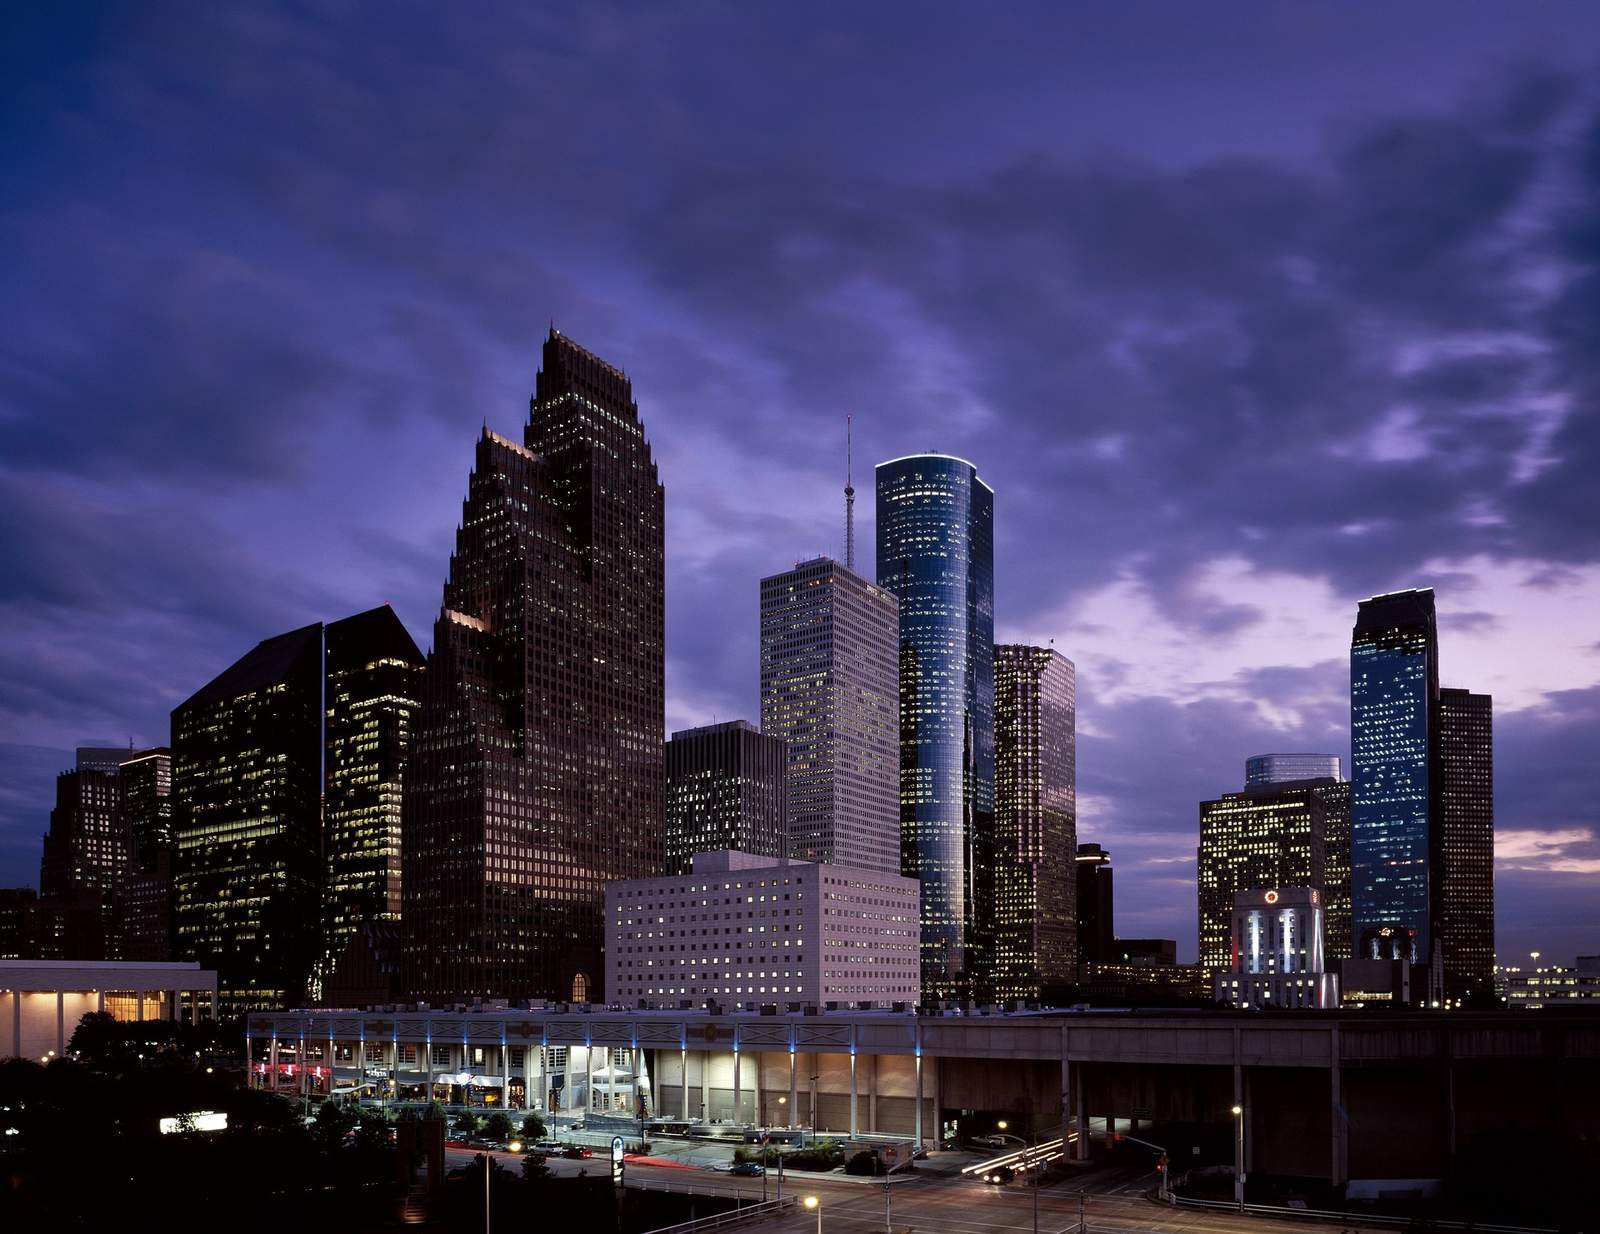 Houston Tx Halloween Rules 2020 Date night with the undead? 5 Houston area activities perfect for